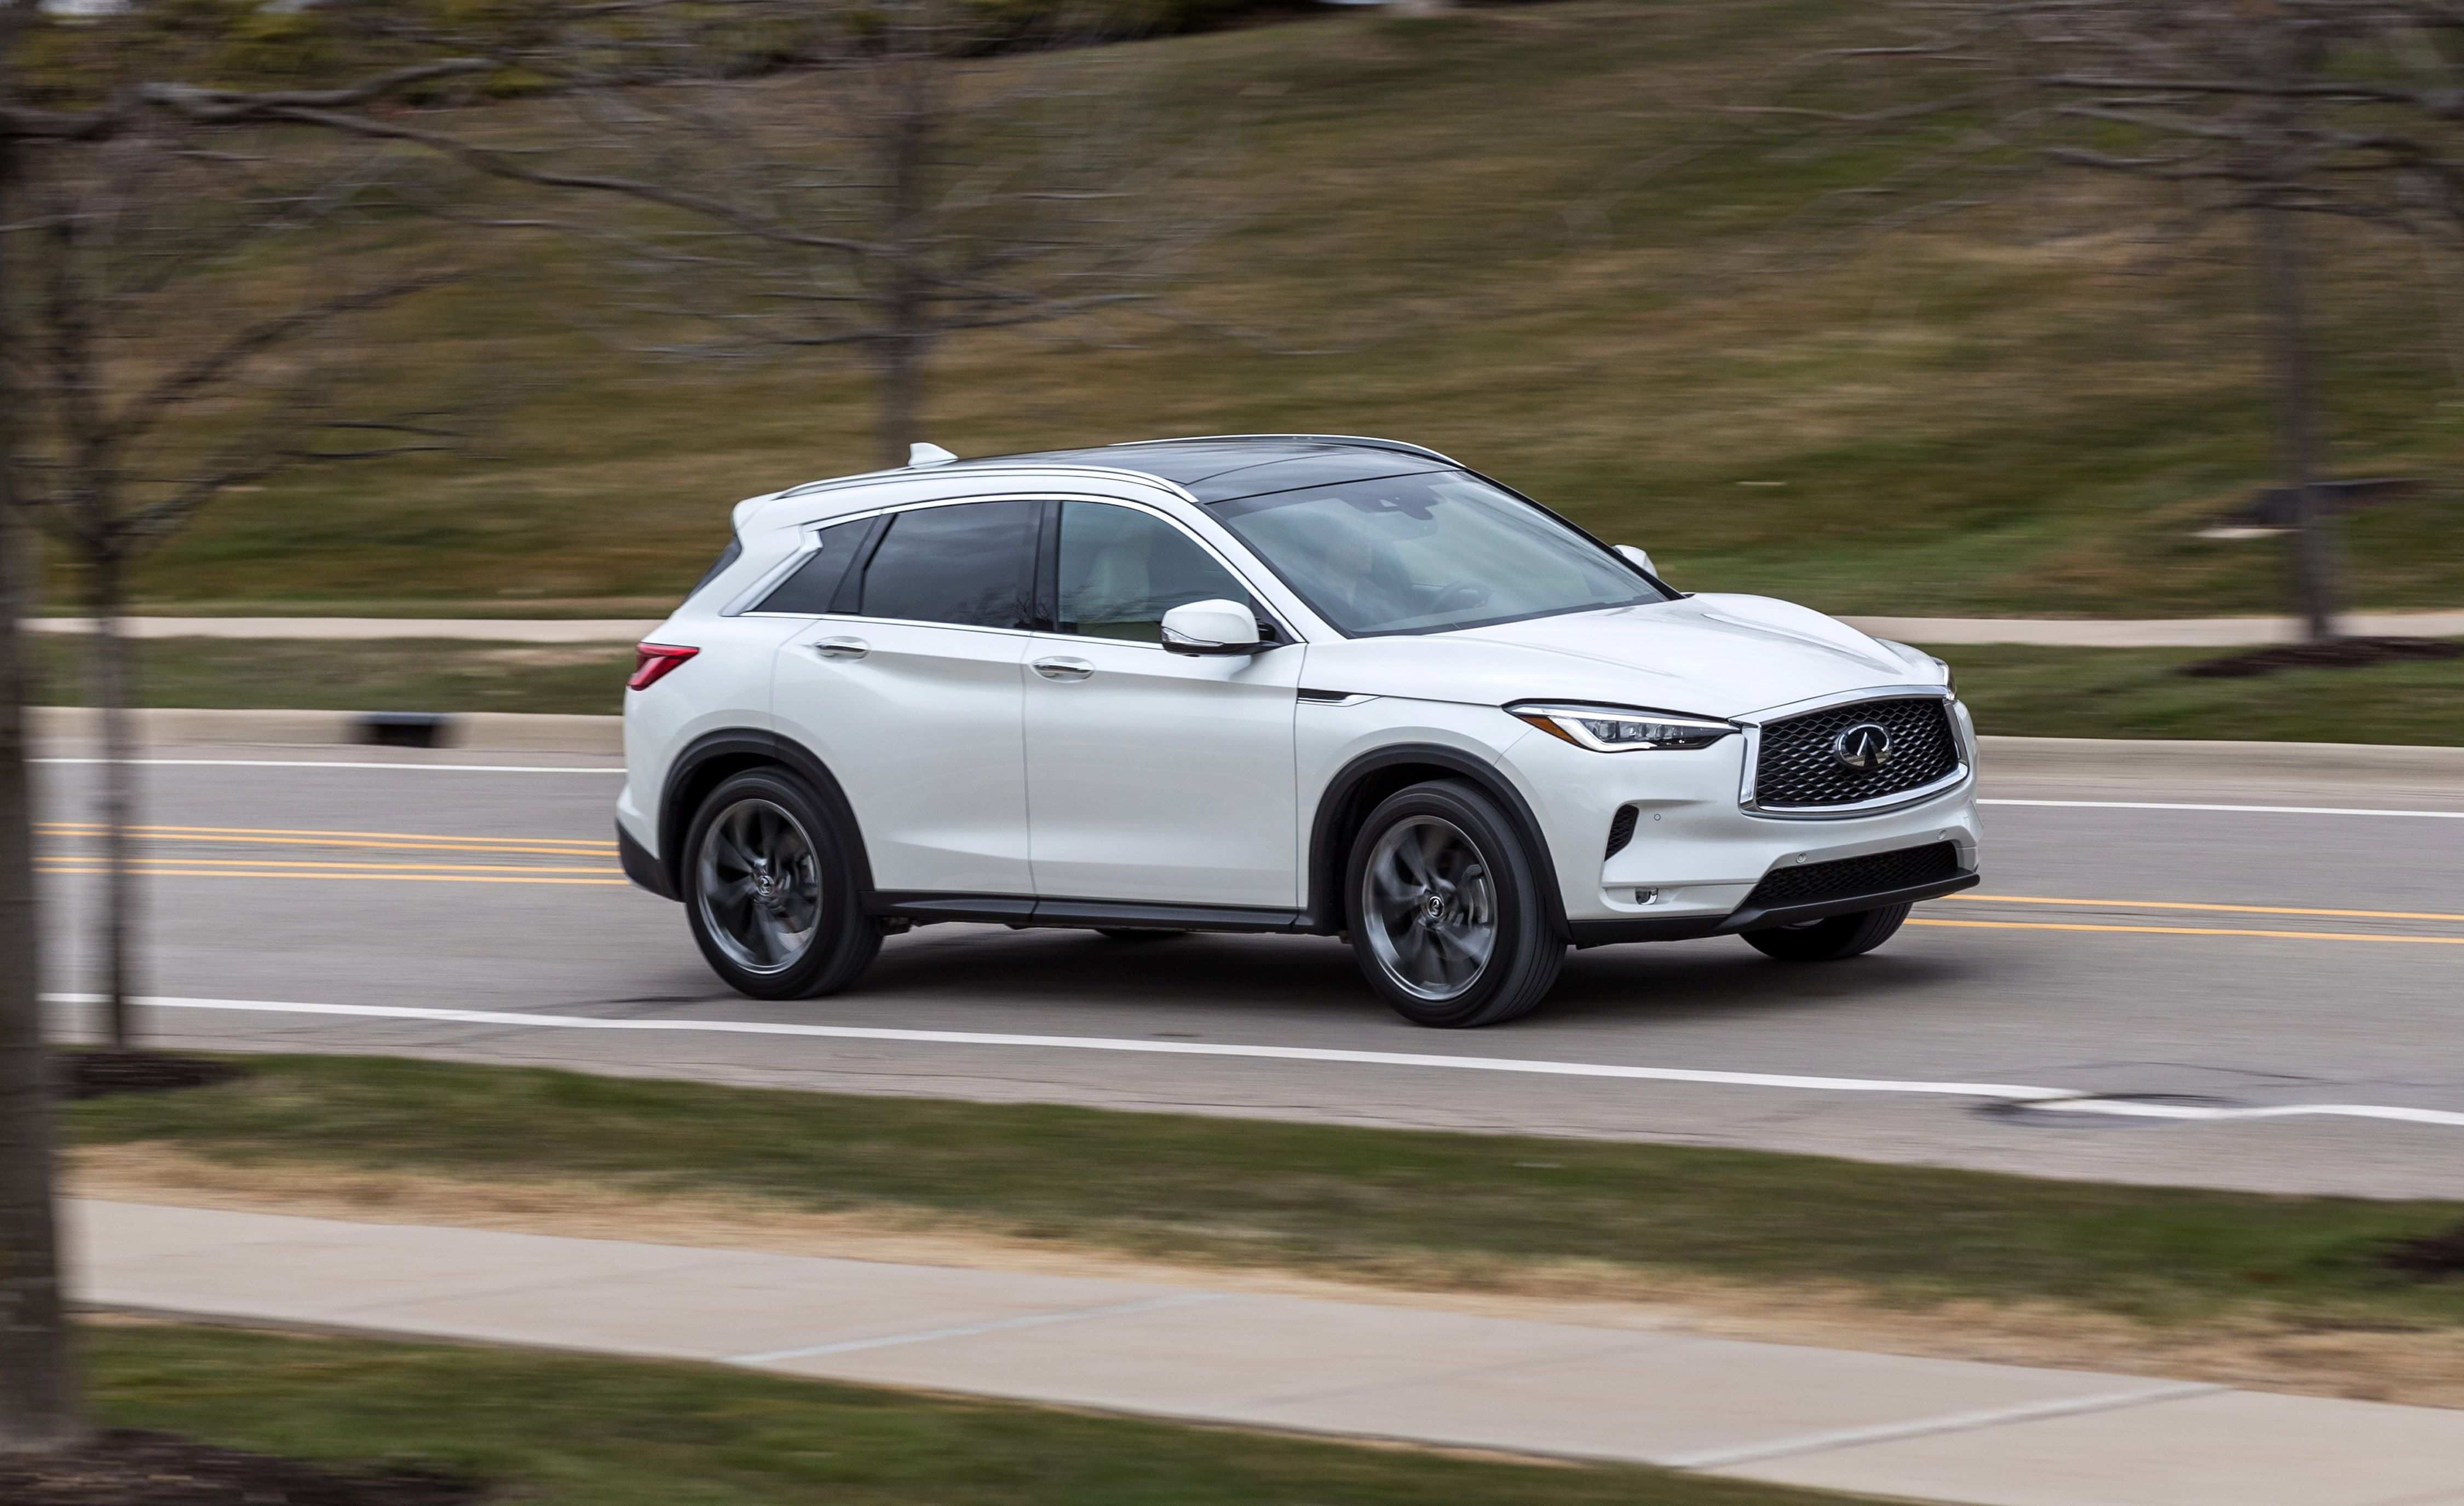 96 All New 2019 Infiniti Truck Price And Review